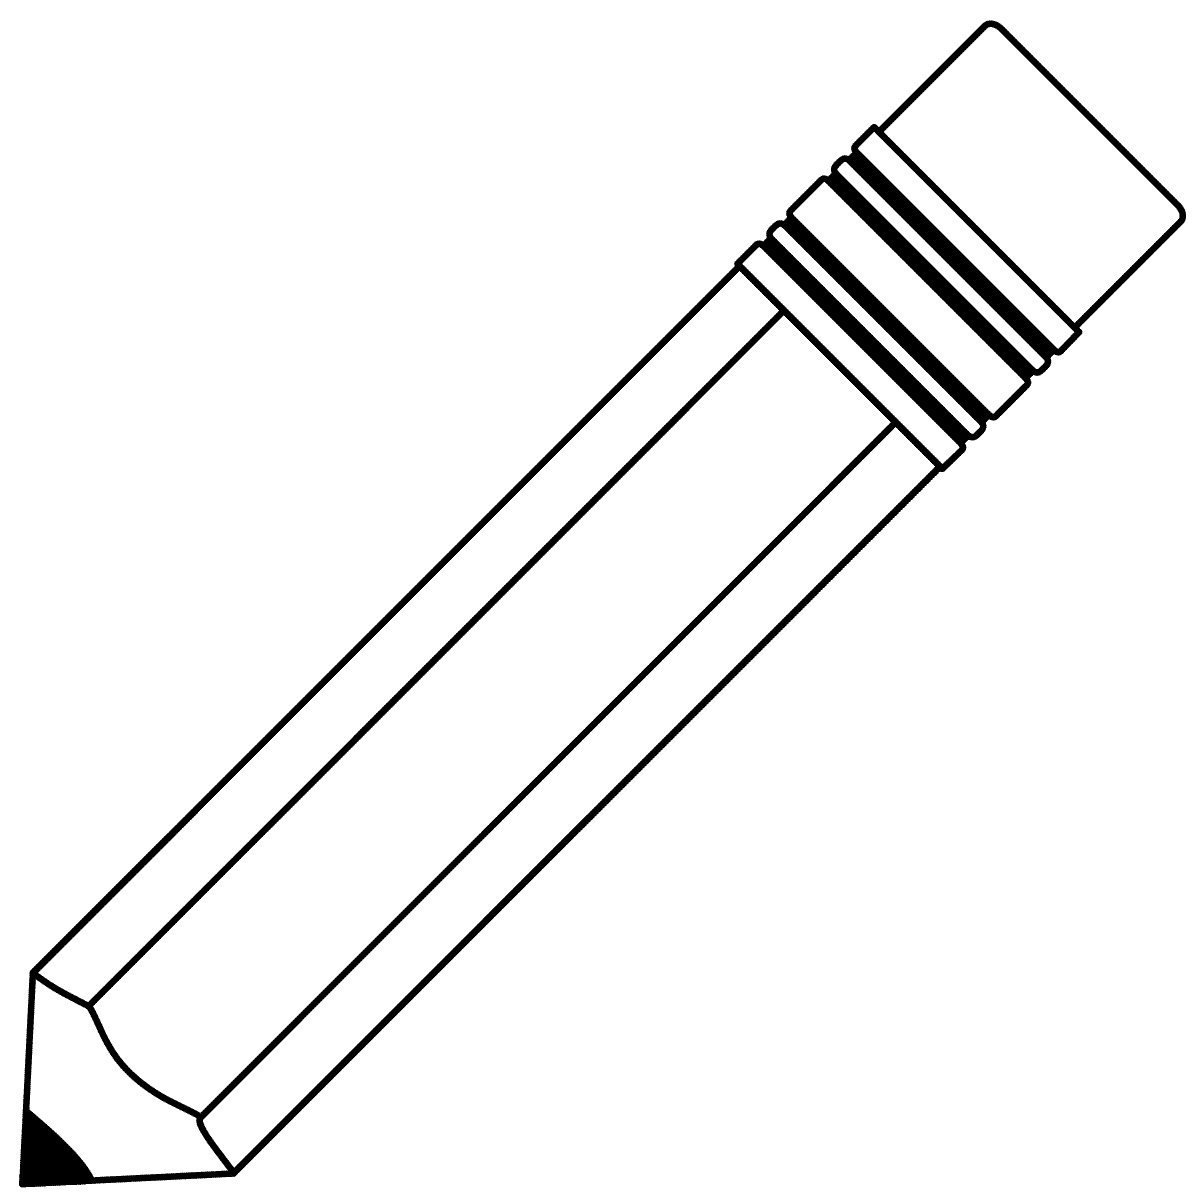 hight resolution of pencil clip art free clipart free clipart image